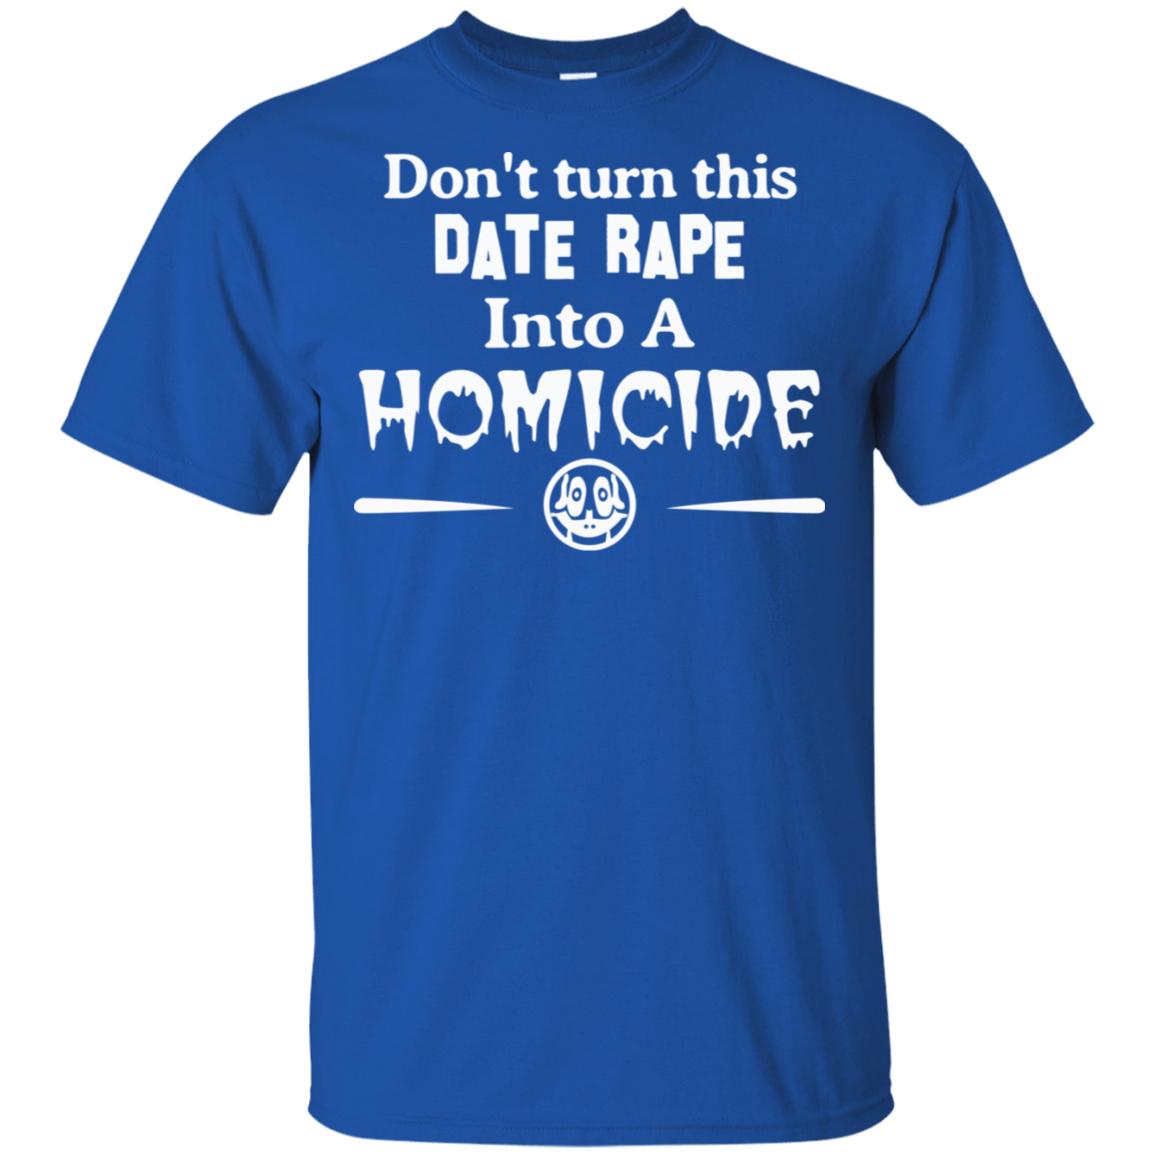 Don't Turn This Date Rape Into A Homicide 22-110-73180317-249 - Tee Ript